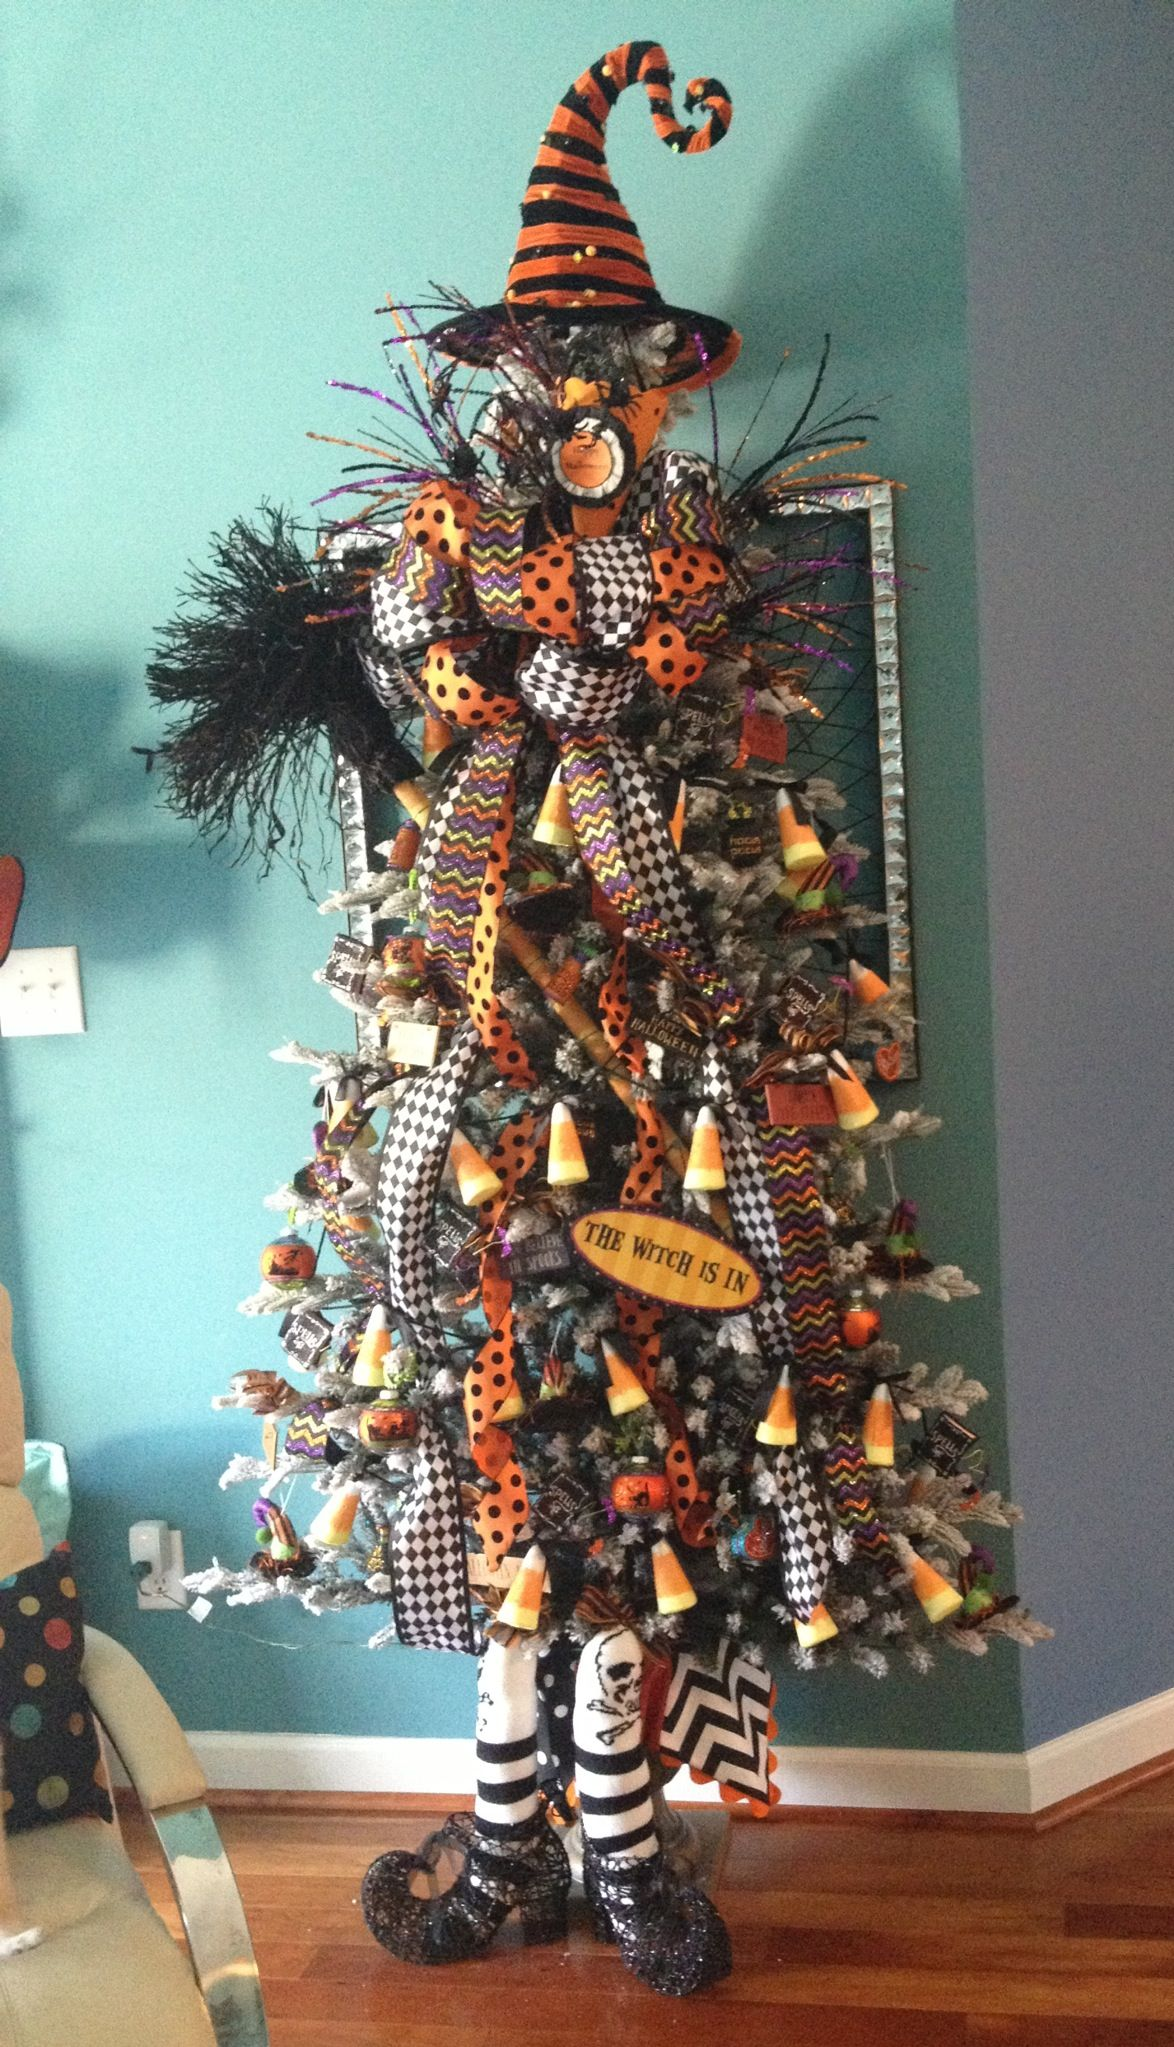 Halloween Tree by Sharpe Designs could be cute with a